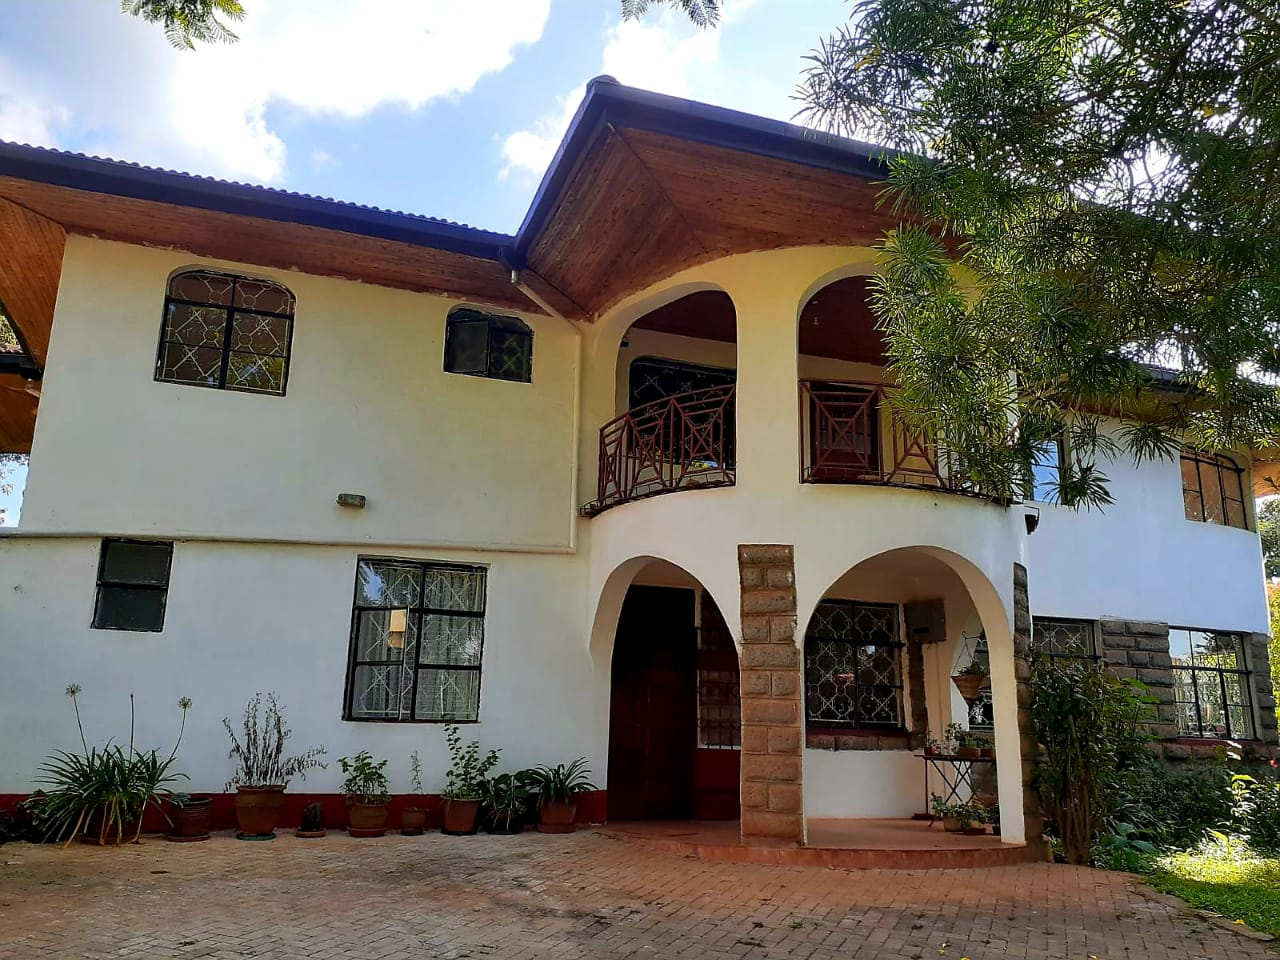 2 bedroom House To Rent At Runda